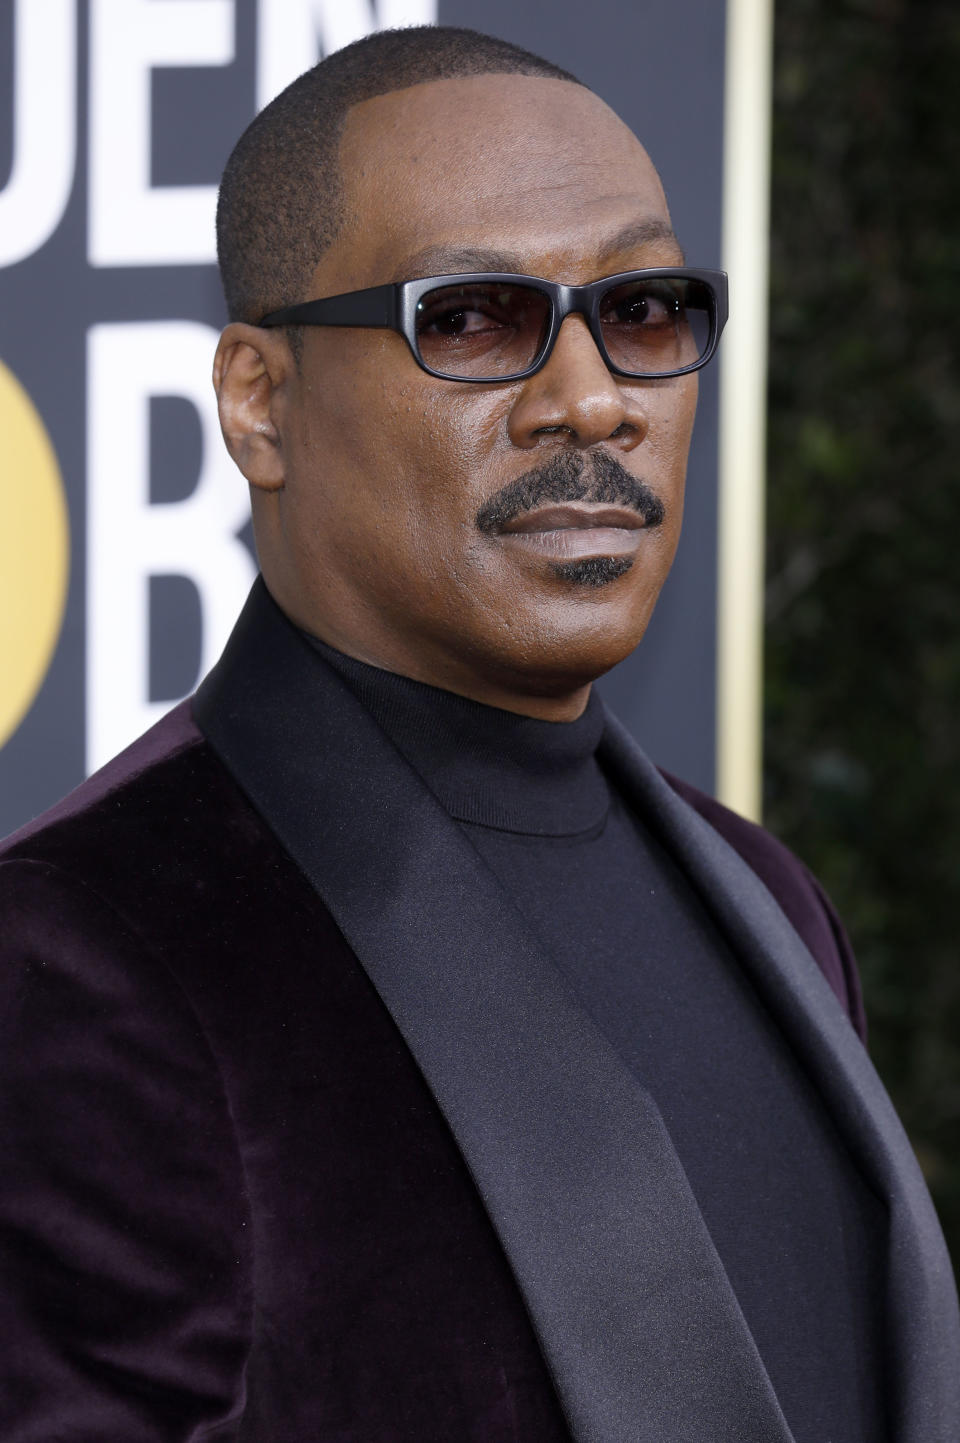 Eddie Murphy photographed on the red carpet of the 77th Annual Golden Globe Awards at The Beverly Hilton Hotel on January 05, 2020 in Beverly Hills, California. (P. Lehman / Barcroft Media via Getty Images)